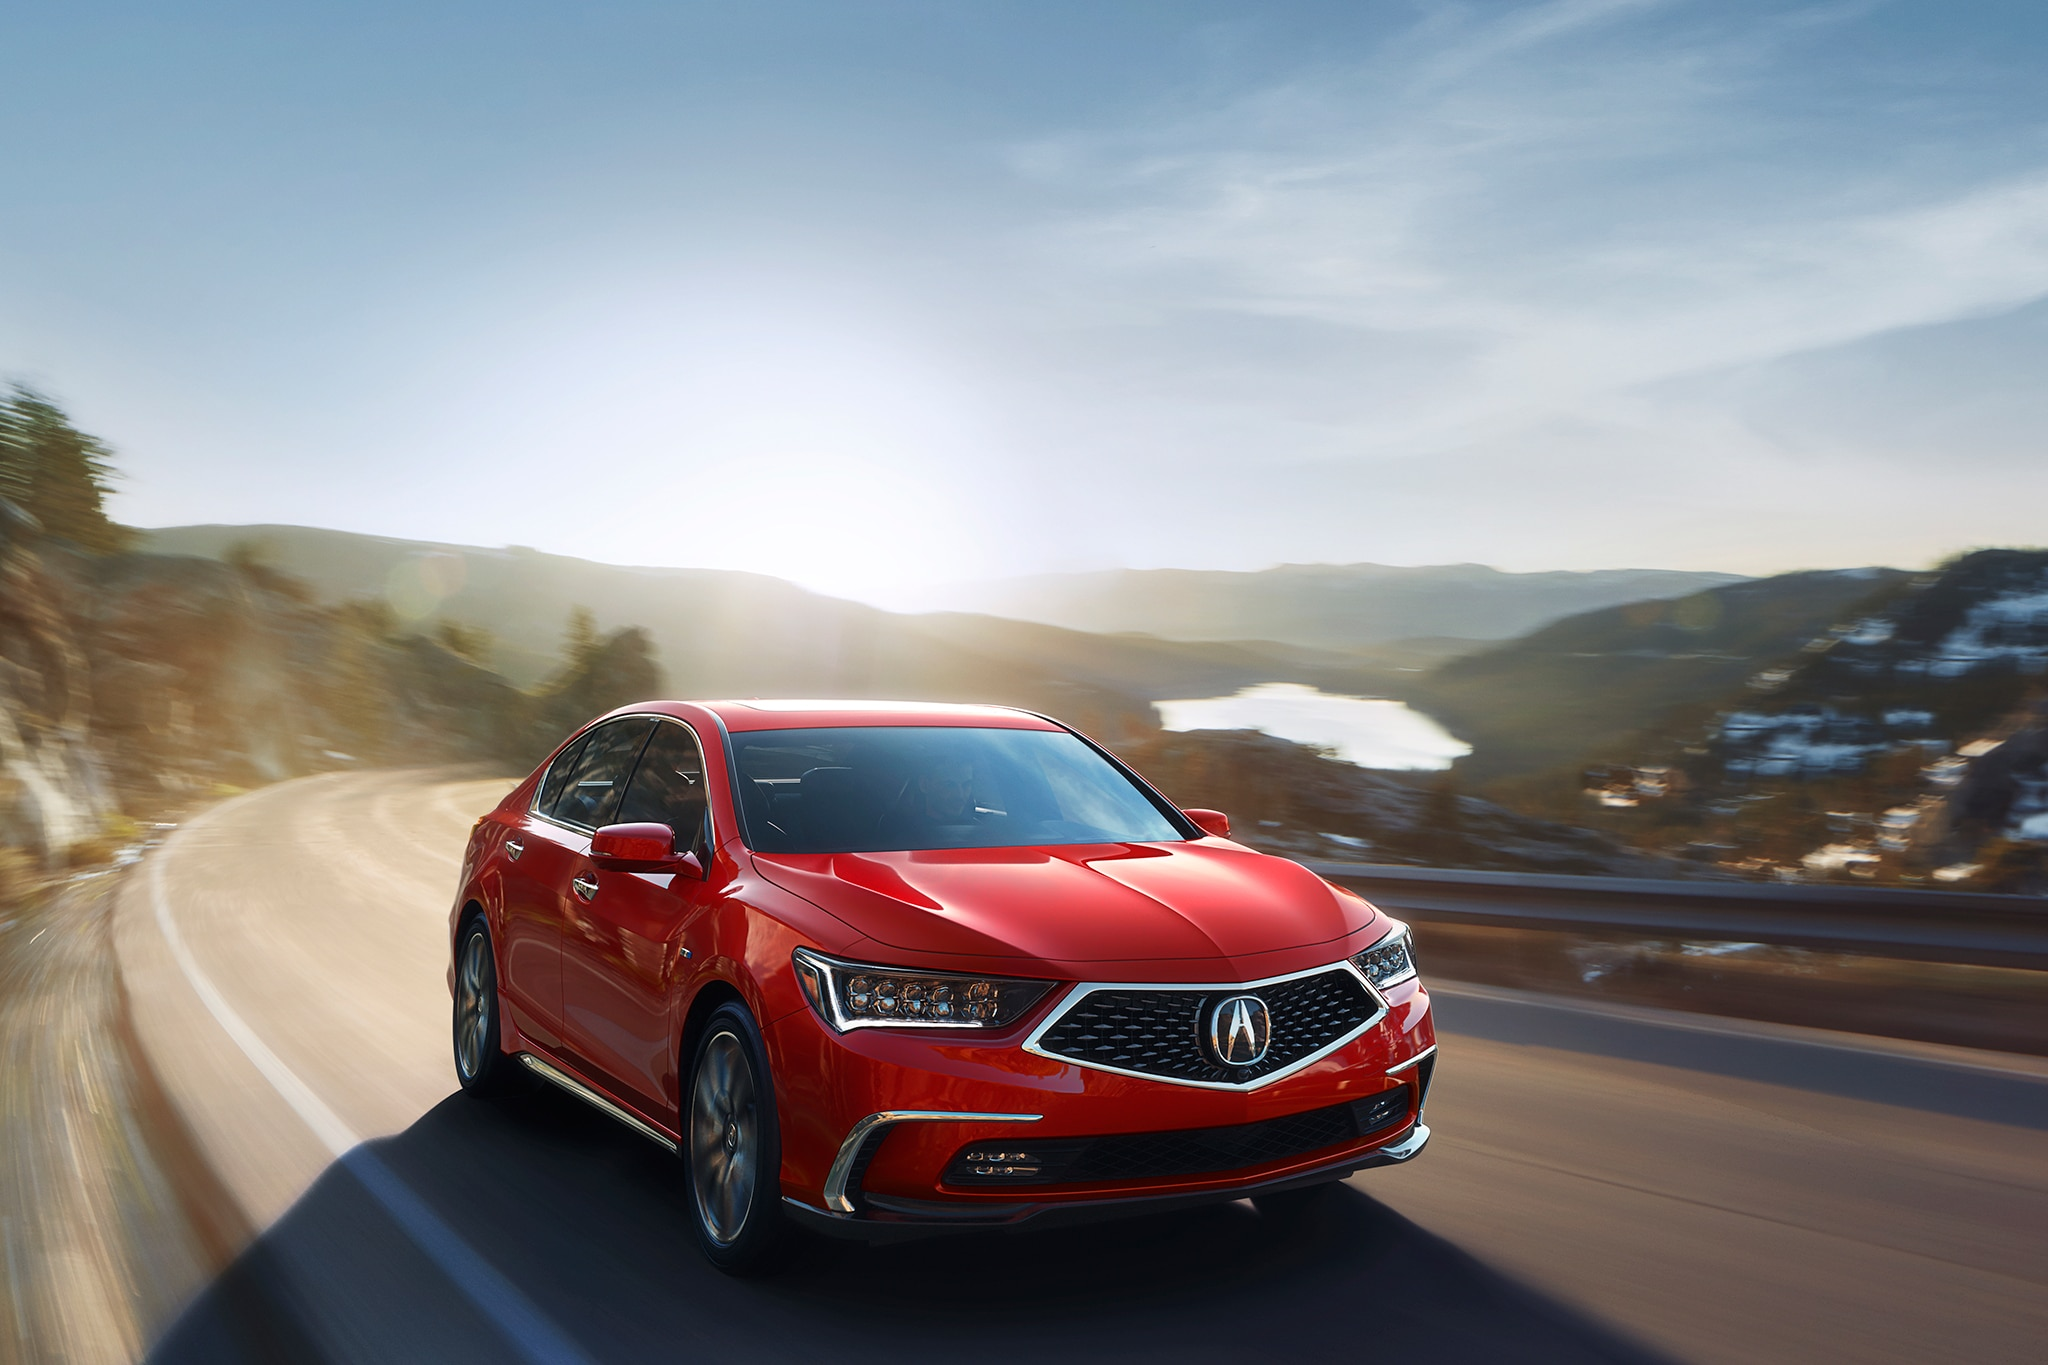 Acura RLX refresh packs a new face and NSX DNA